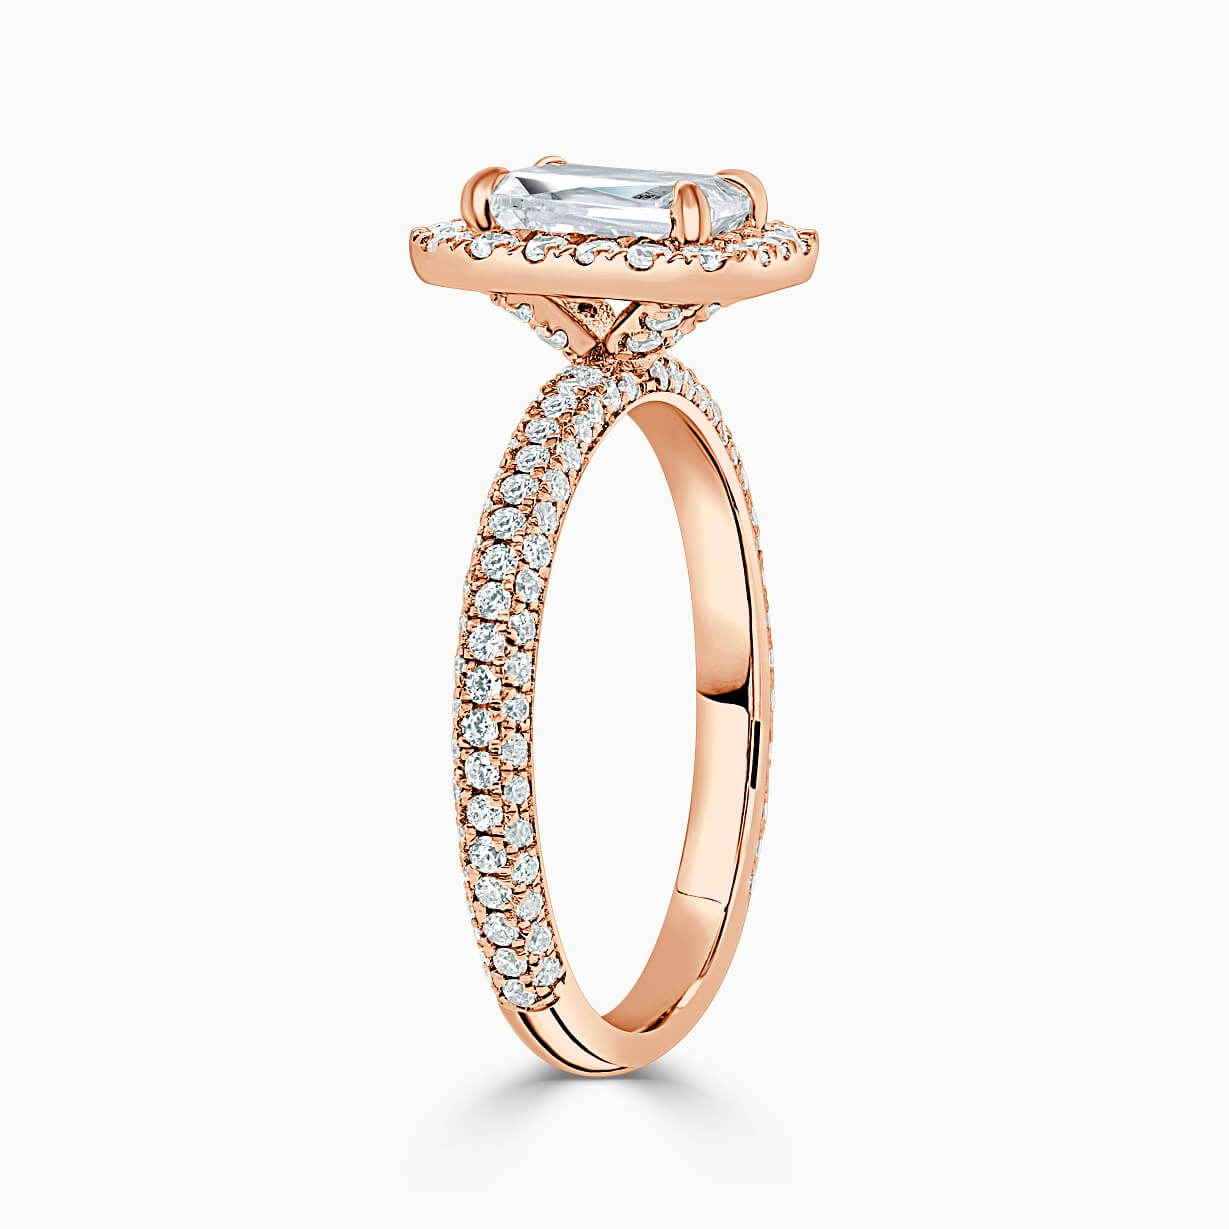 18ct Rose Gold Emerald Cut Halo With Micro Pave Engagement Ring